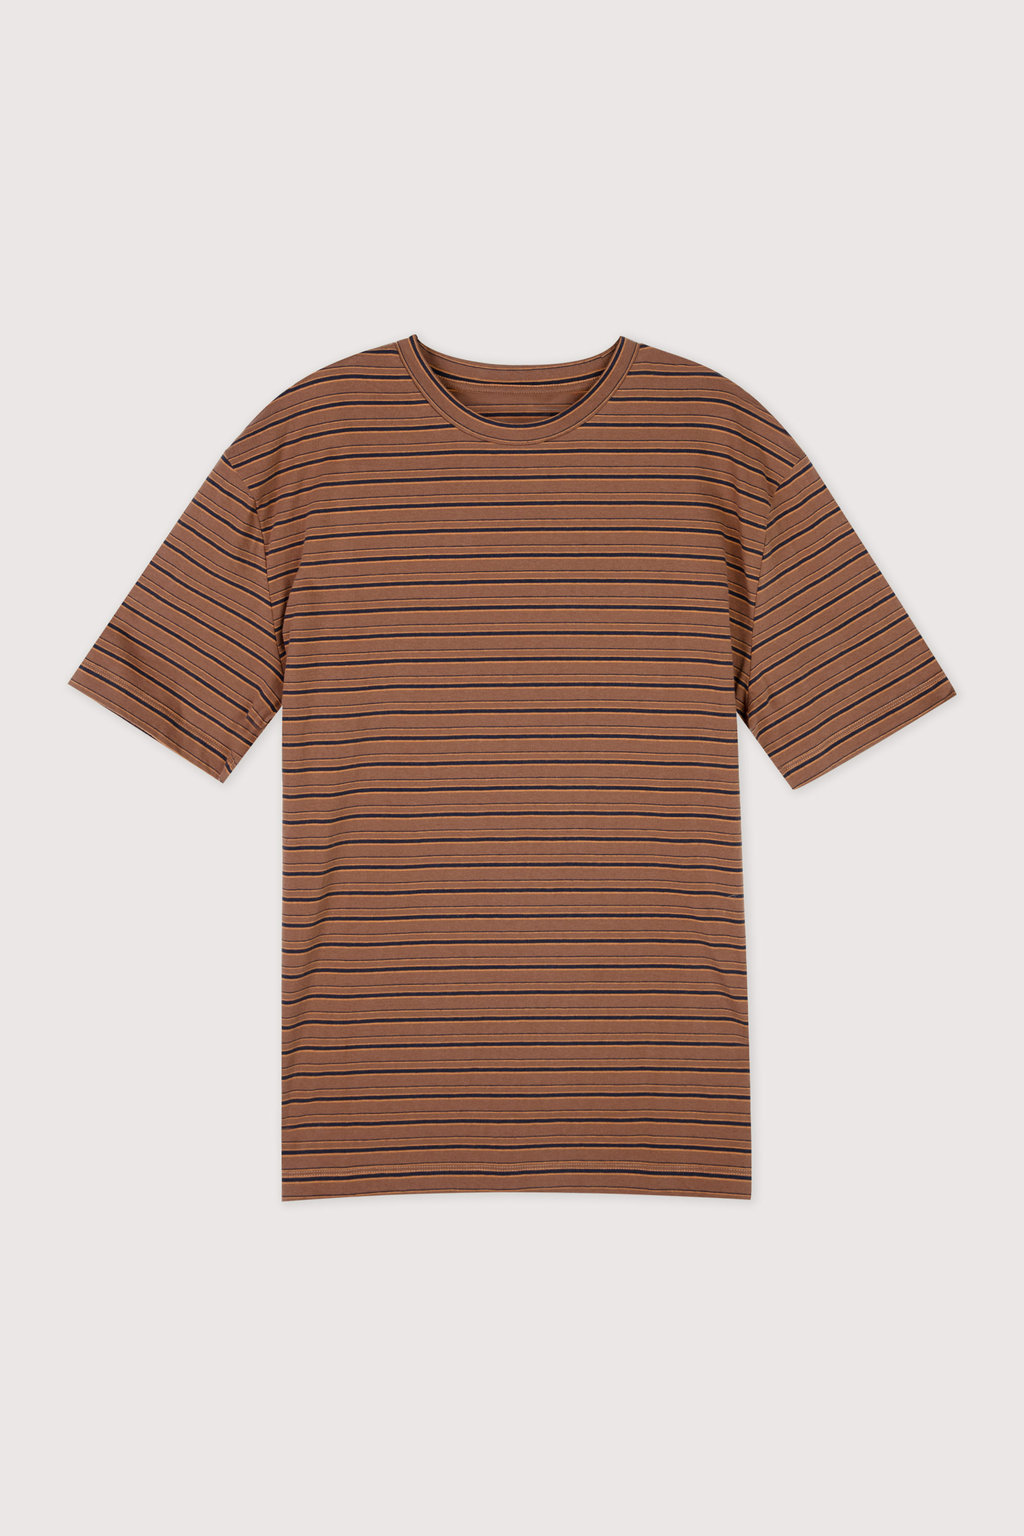 TShirt 3616 Brown Stripe 11